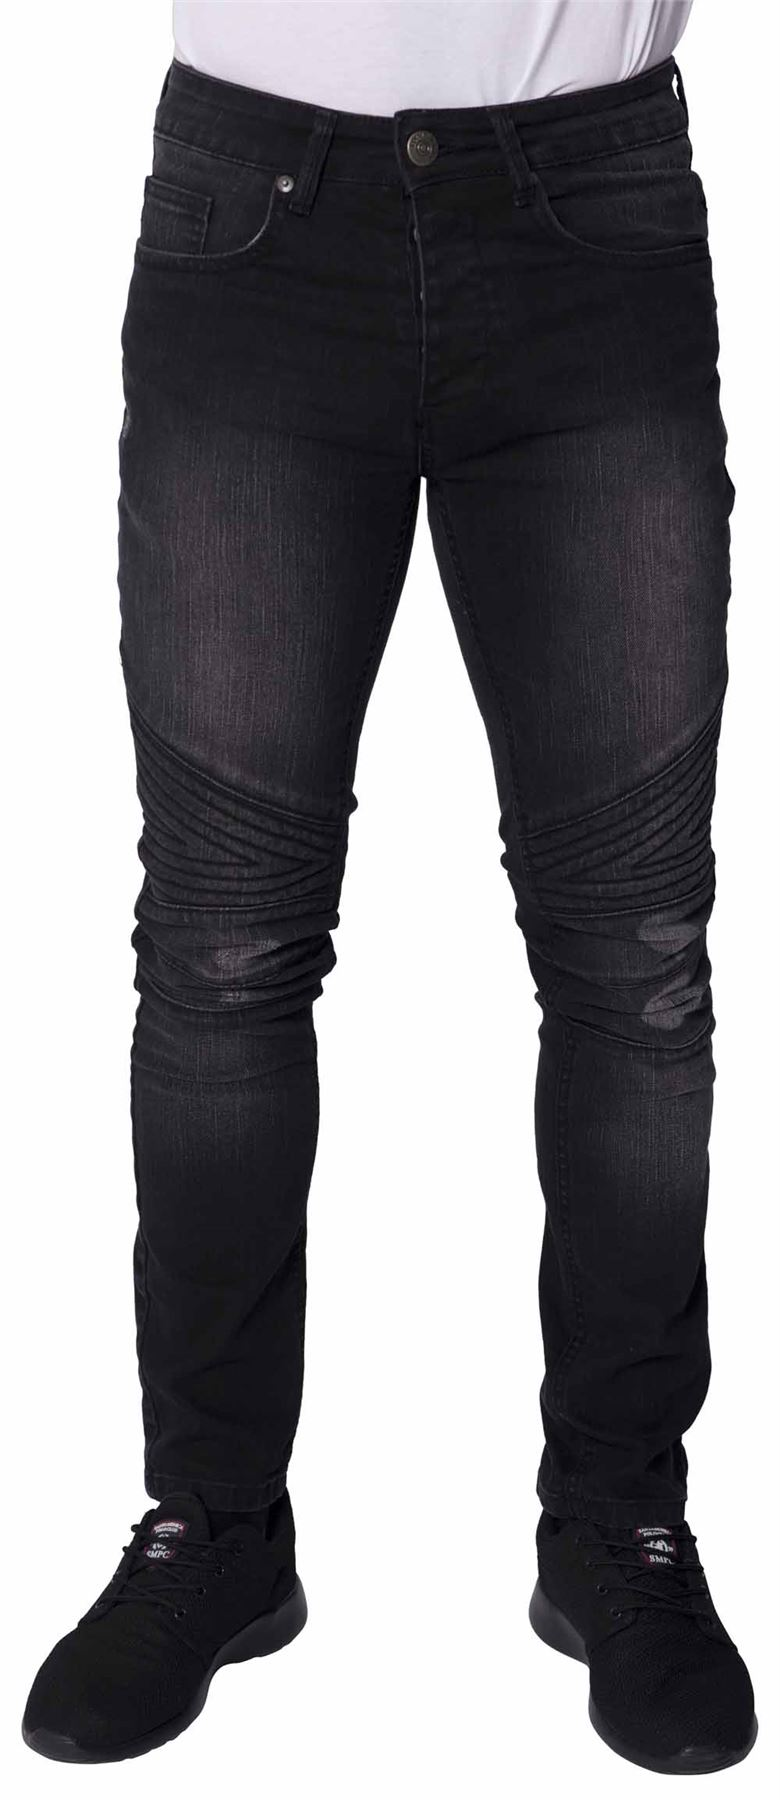 Ripped jeans black ebay